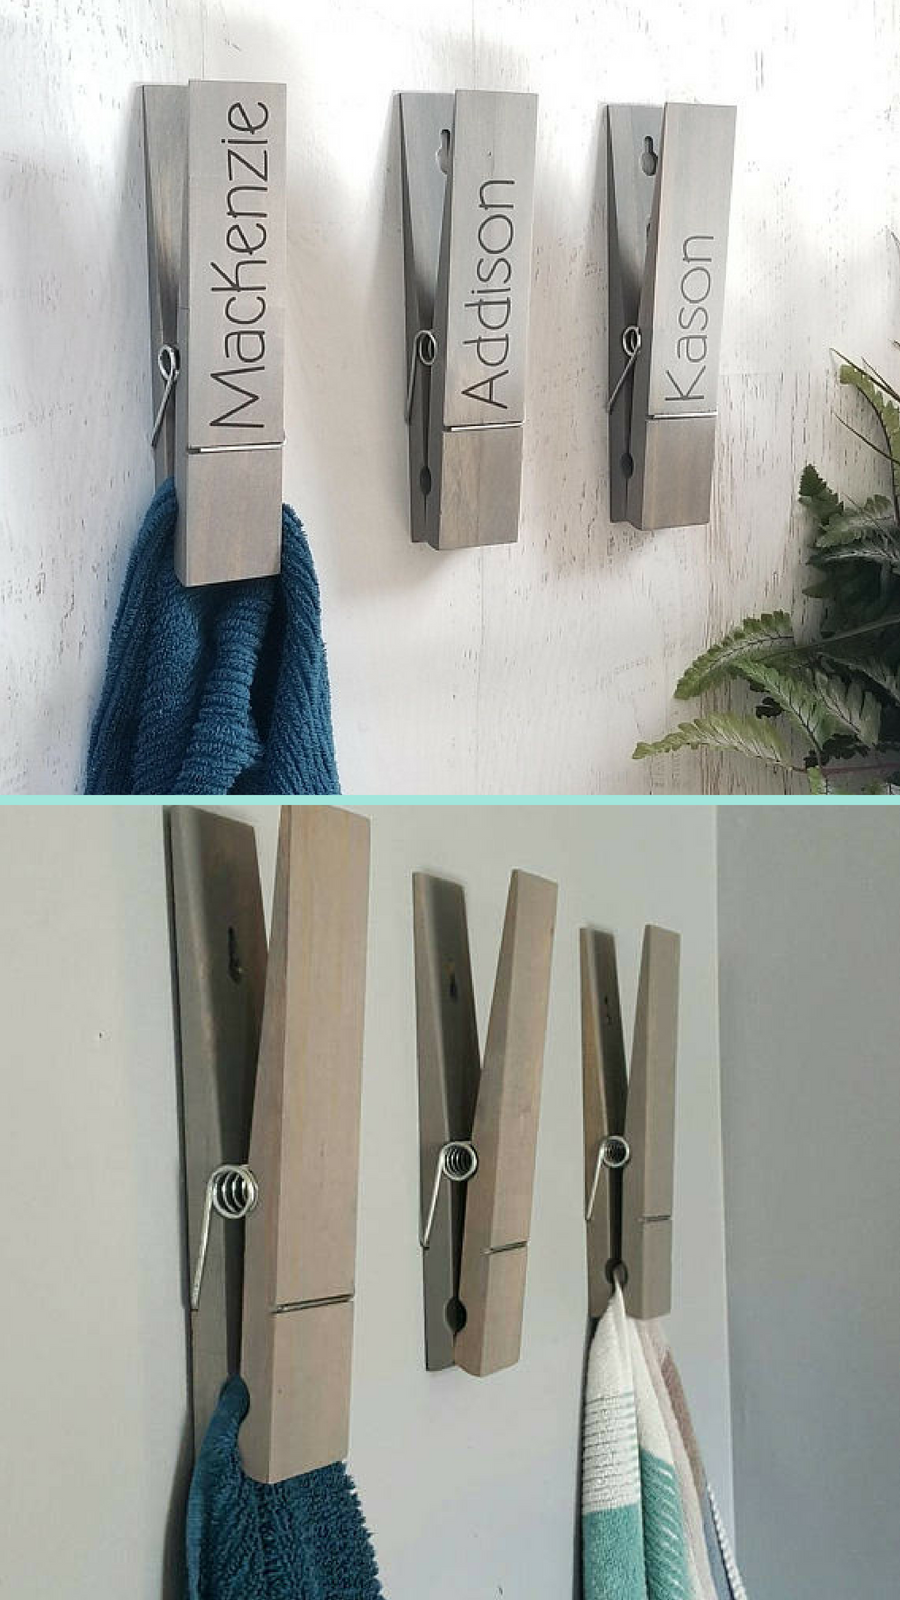 A jumbo clothespin for hanging towels clothespin towel holder bathroom decor towel hook kitchen decor laundry room decor farmhouse decor